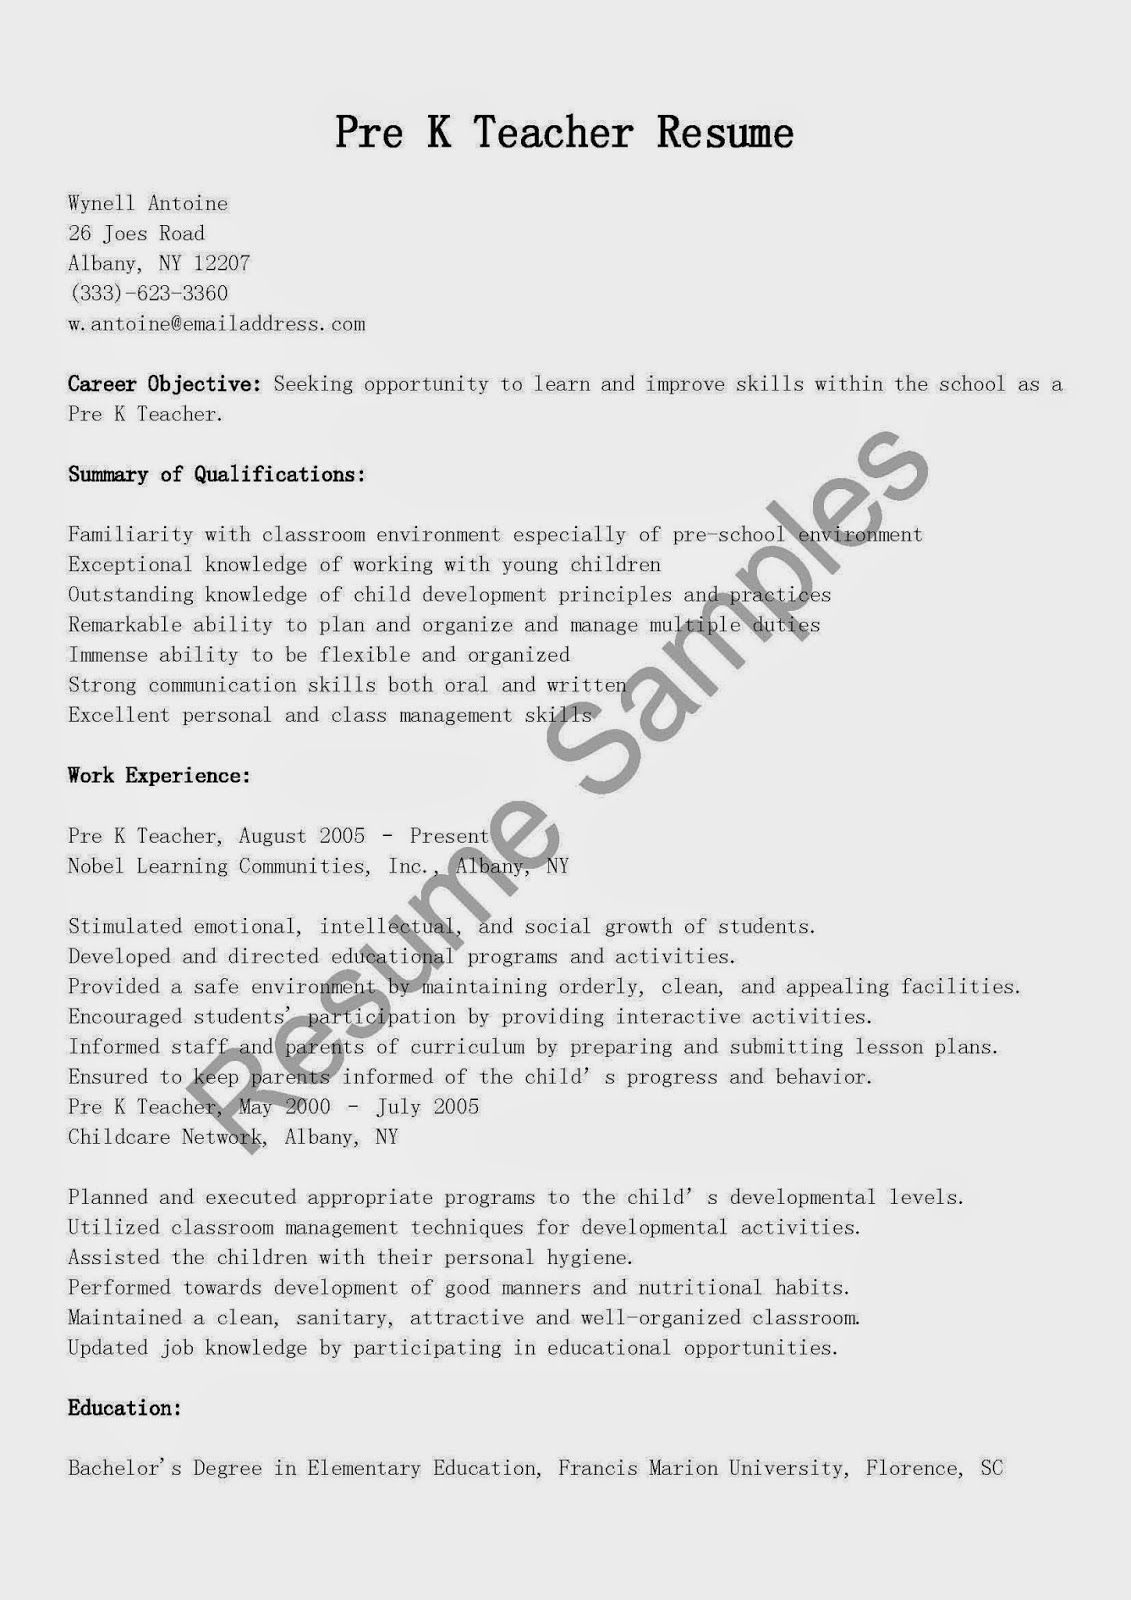 Best Resume Font To Use